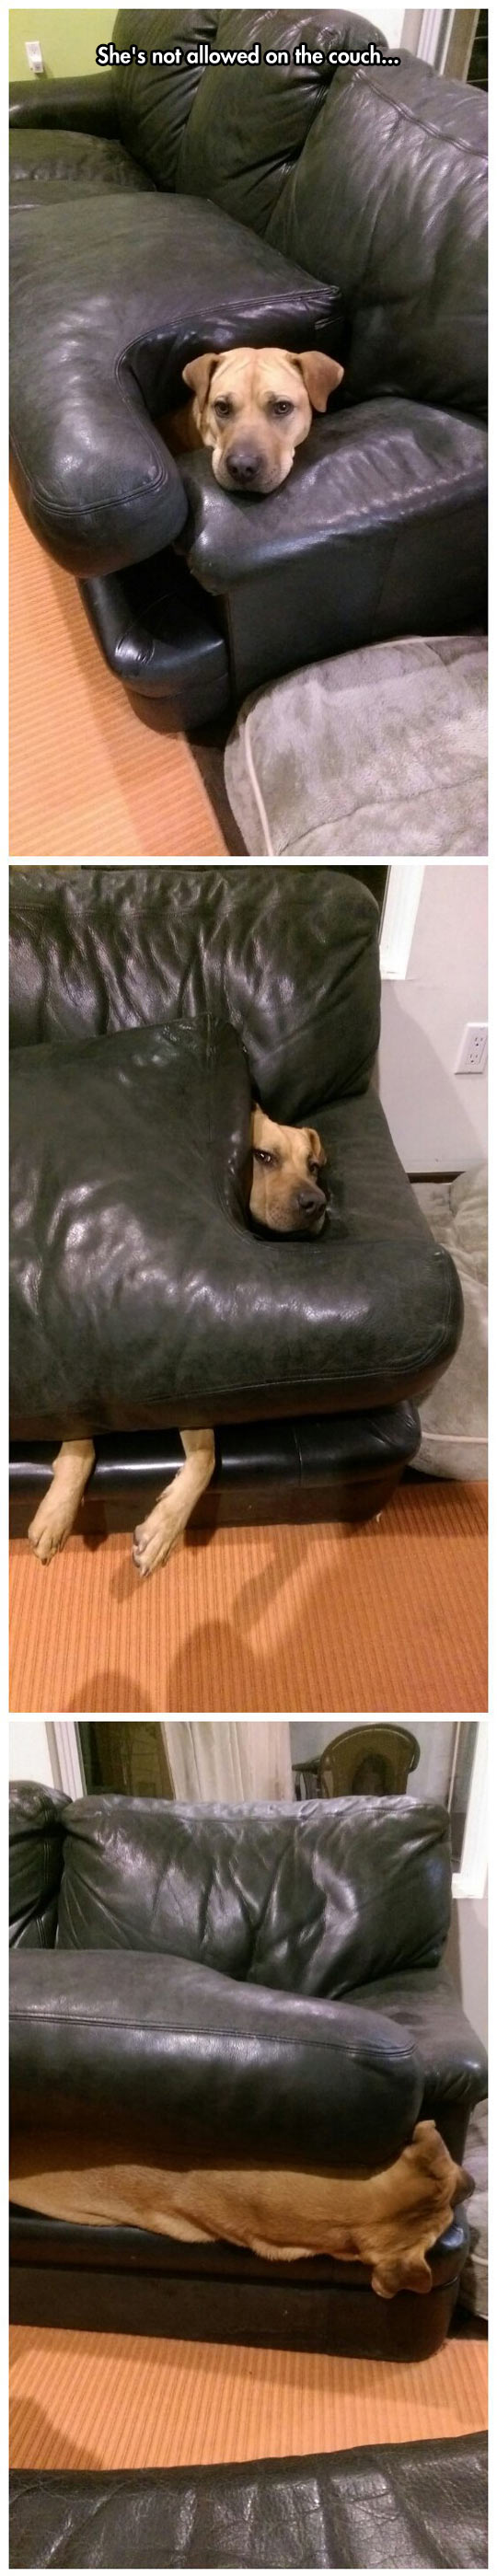 cool-dog-under-pillow-couch